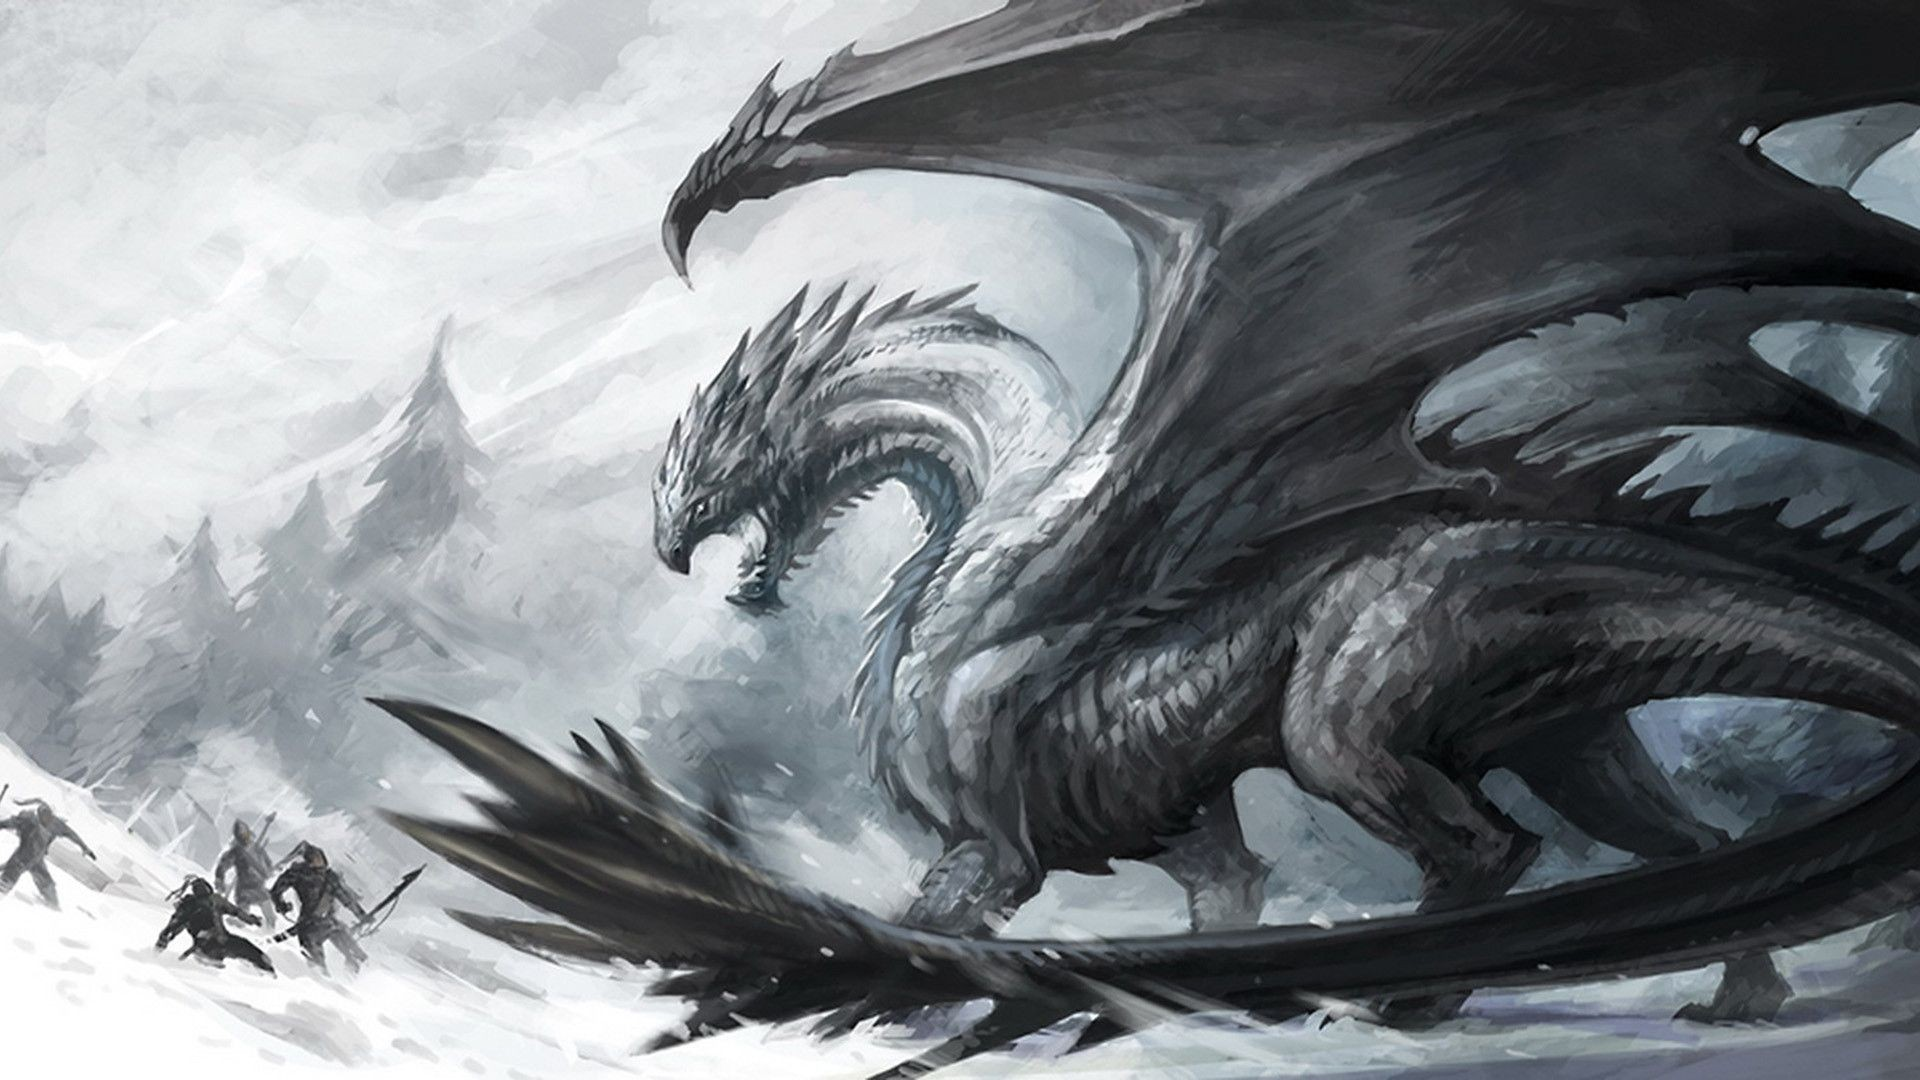 Dragon Wallpaper HD 1 Download Free High Resolution Backgrounds